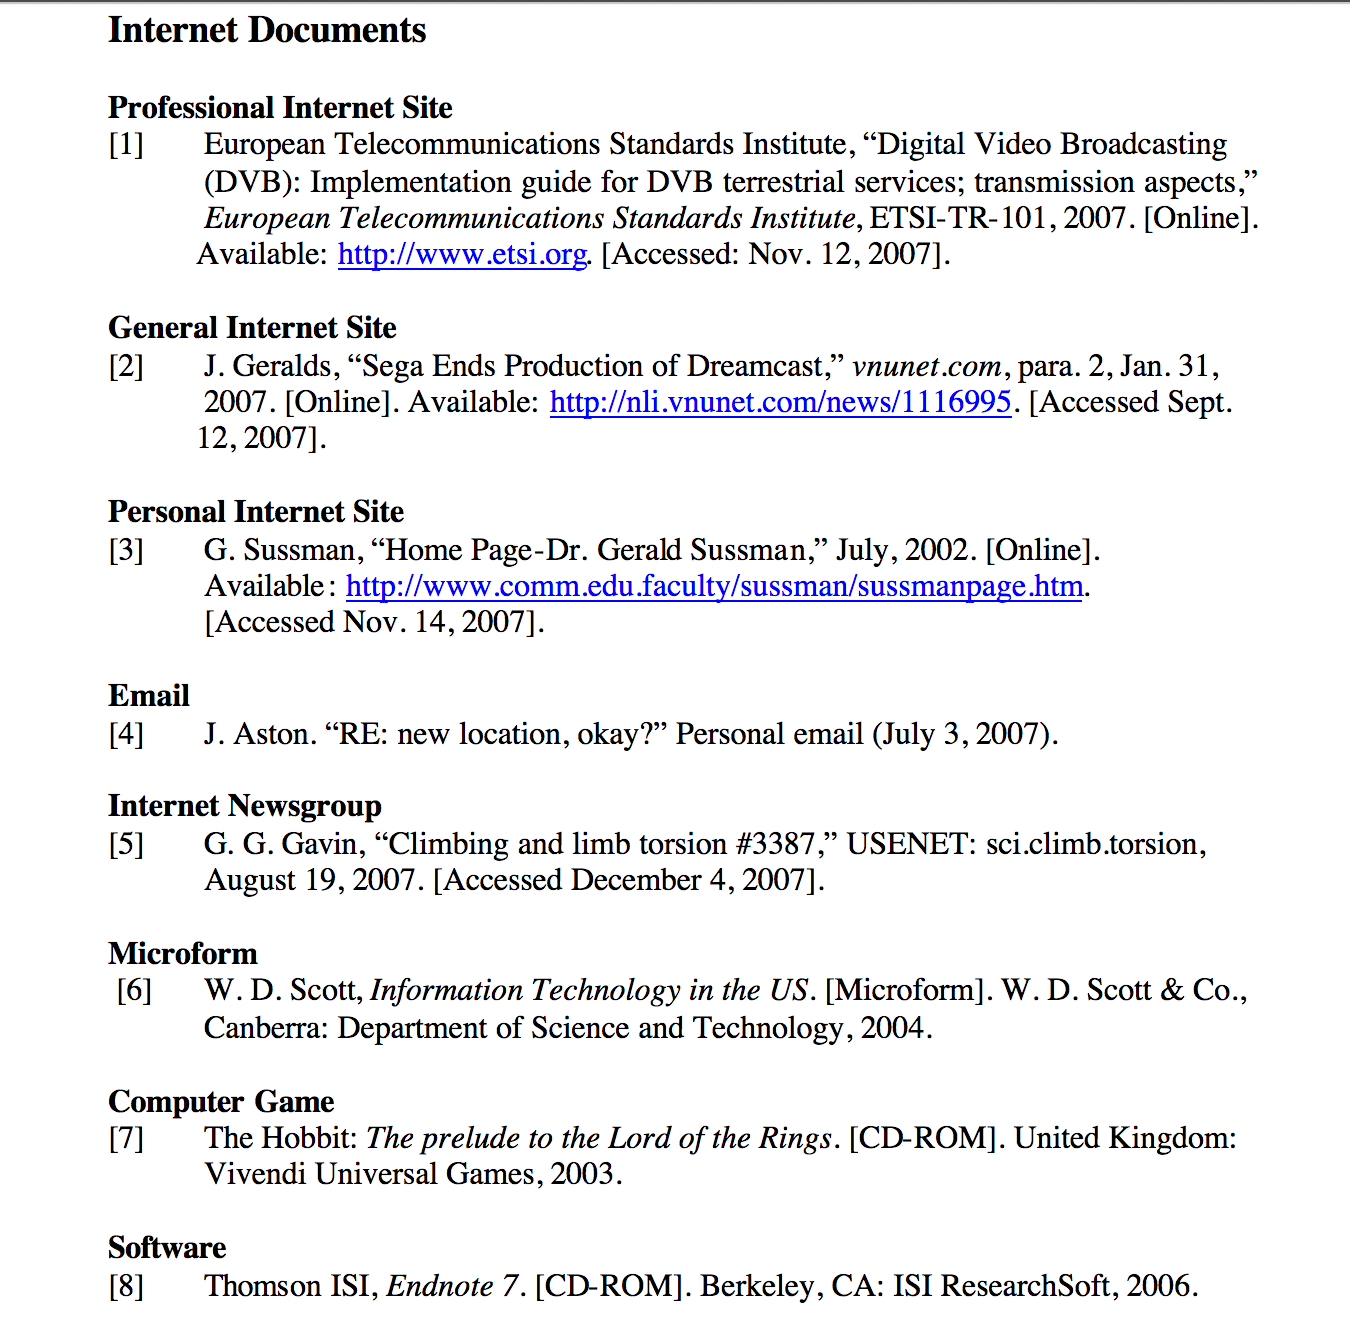 003 Research Paper Ieee Format For Pdf 2 1528899709 Fascinating Full